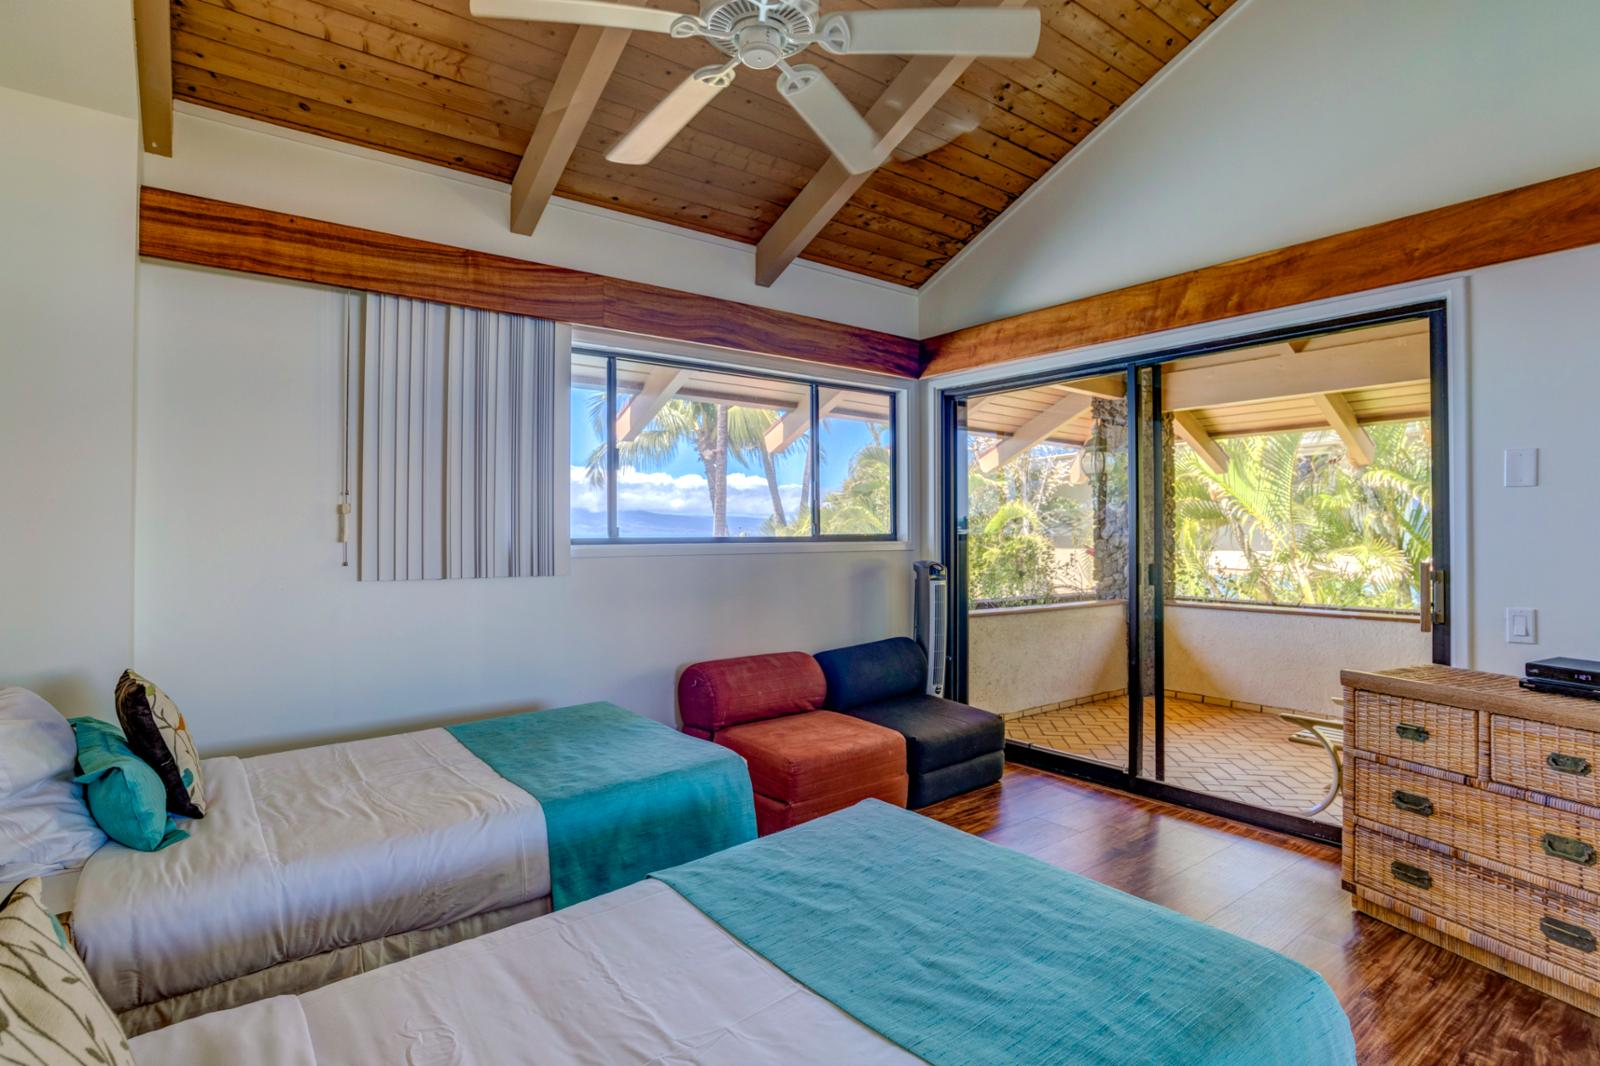 Guest bedroom 3, located on the 2nd floor with shared private lanai with bedroom 4